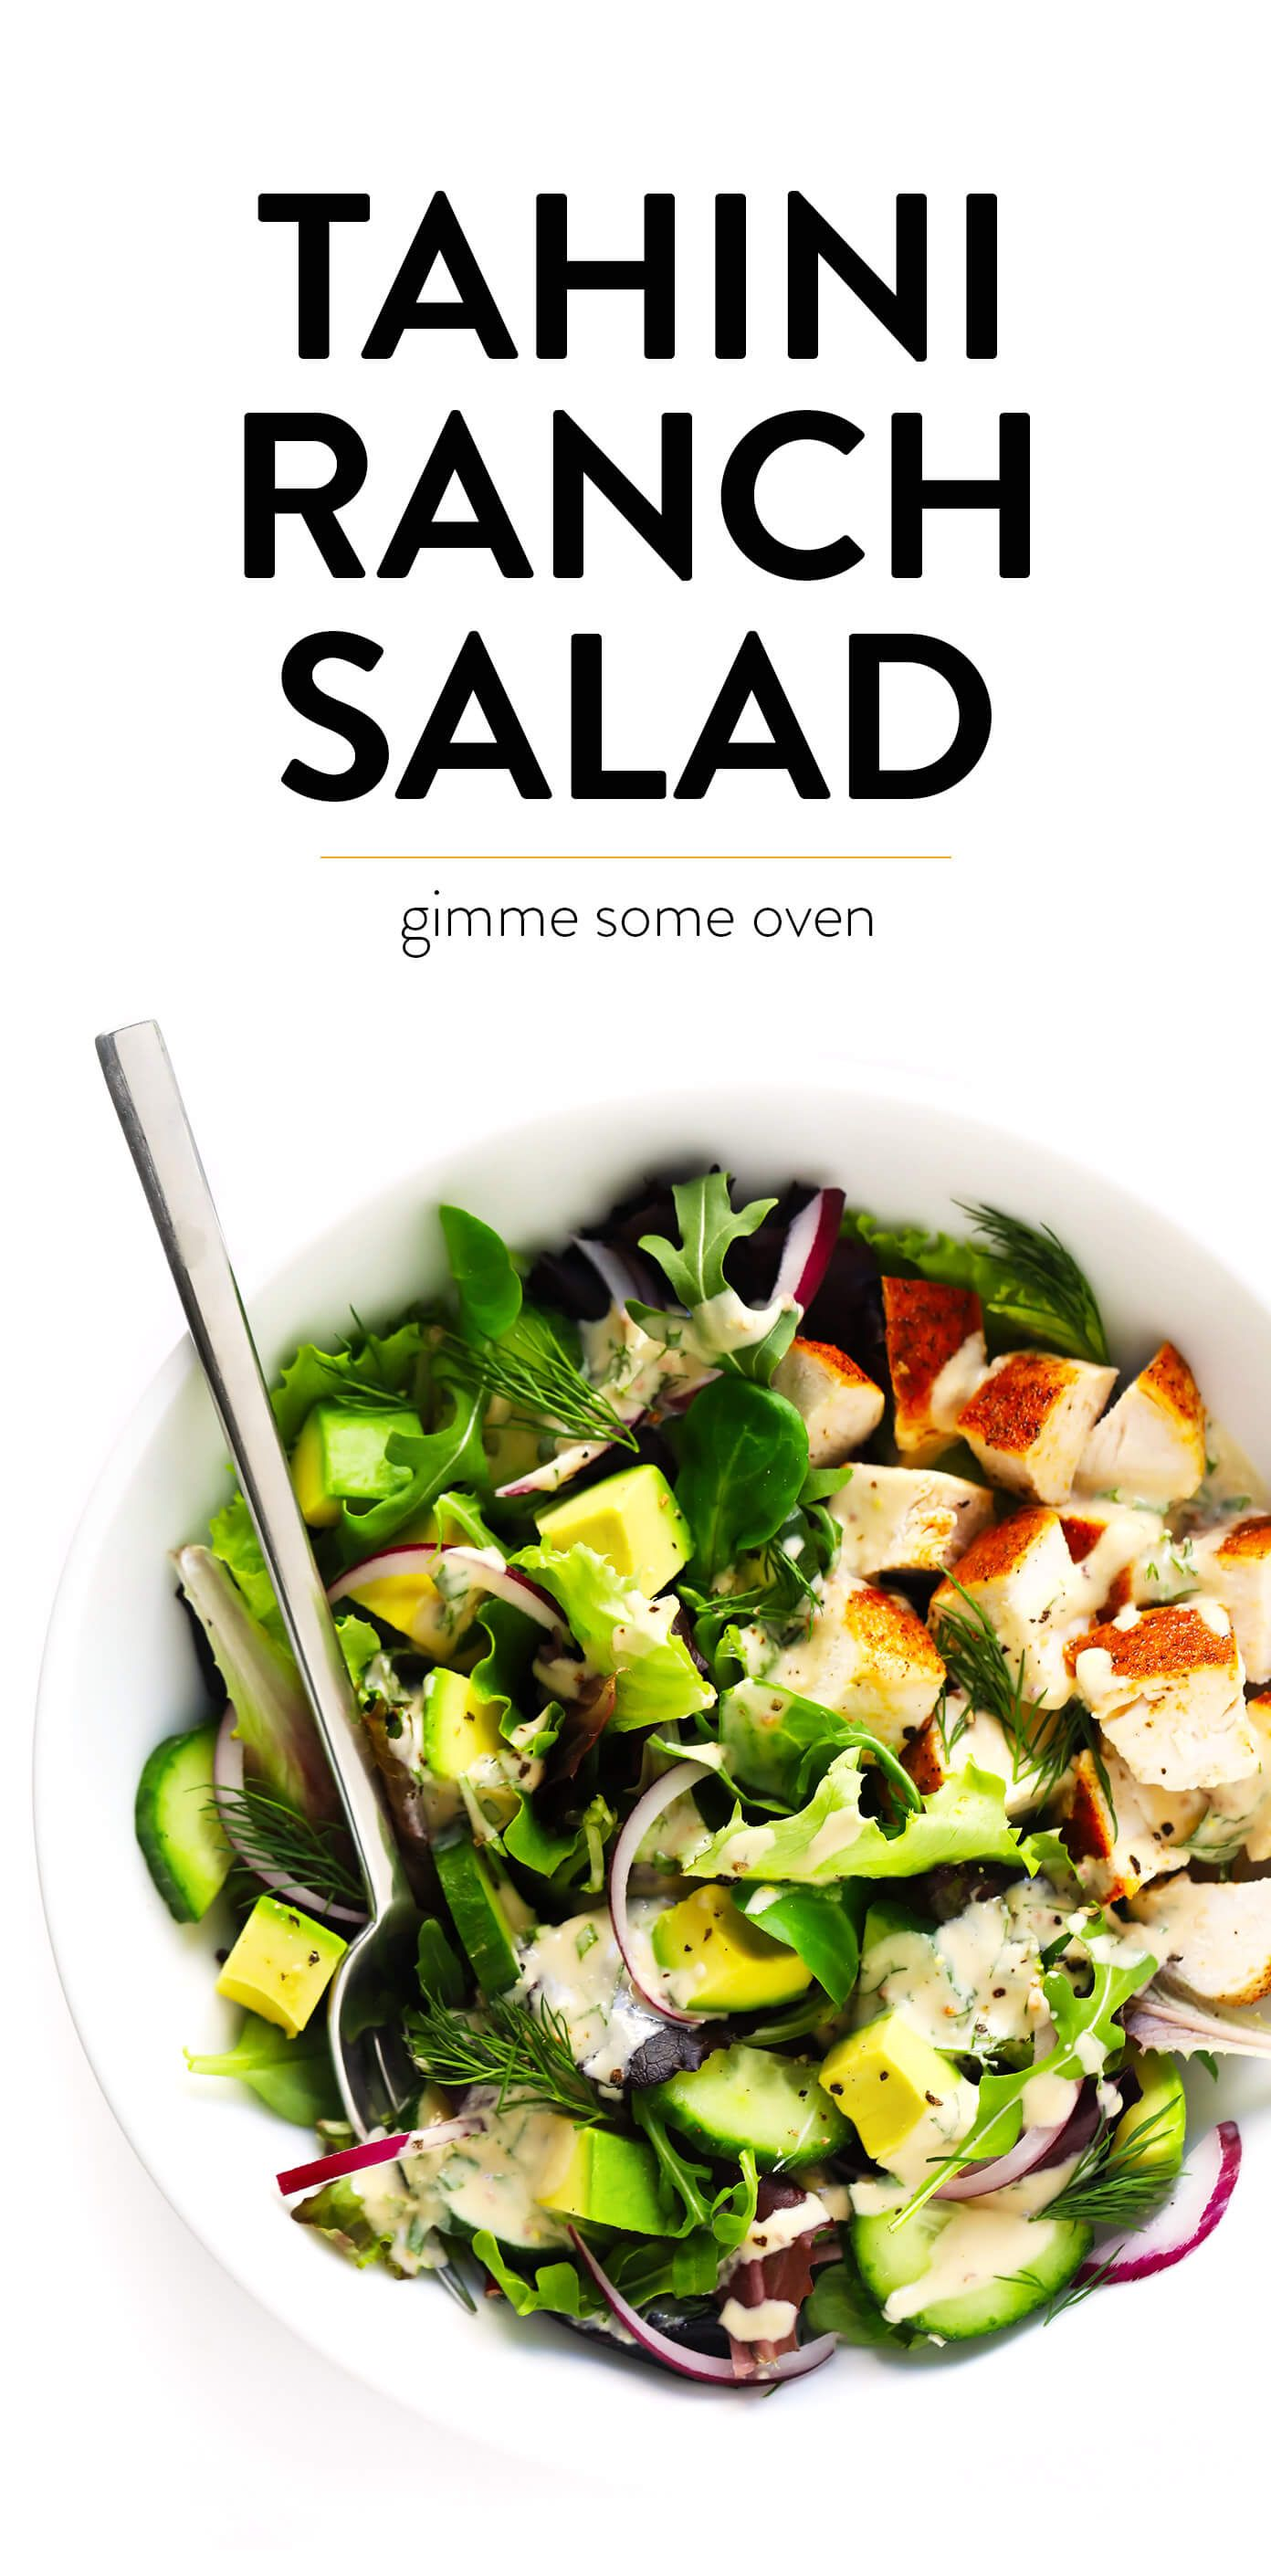 This Tahini Ranch Avocado Chicken Salad is made with your choice of greens and veggies, tender bake